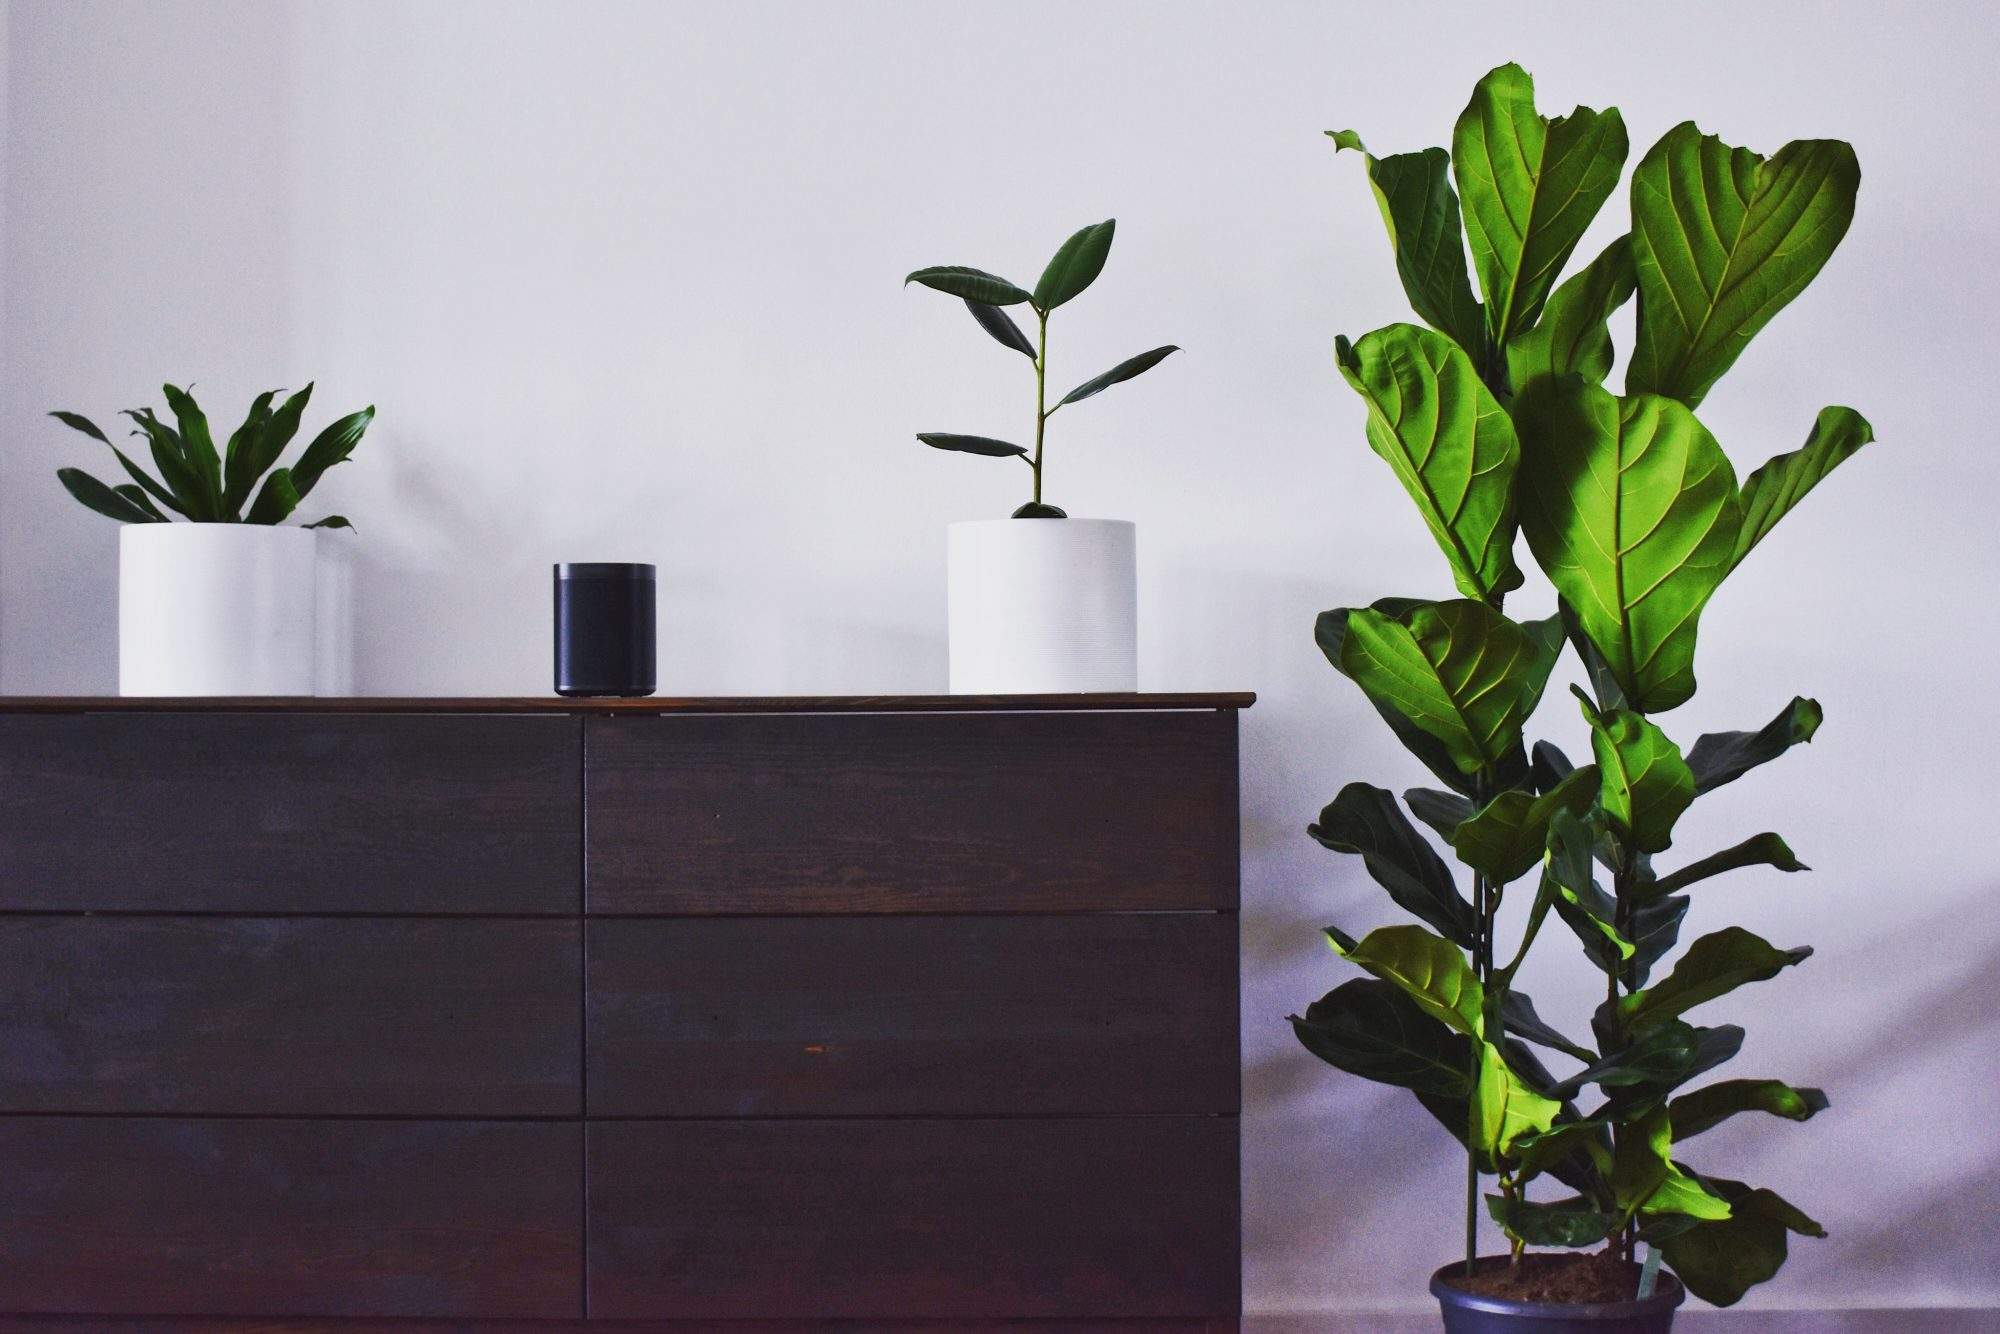 3 Ways to Bring a Touch of Nature into Your Home: Use houseplants to bring the outdoors in